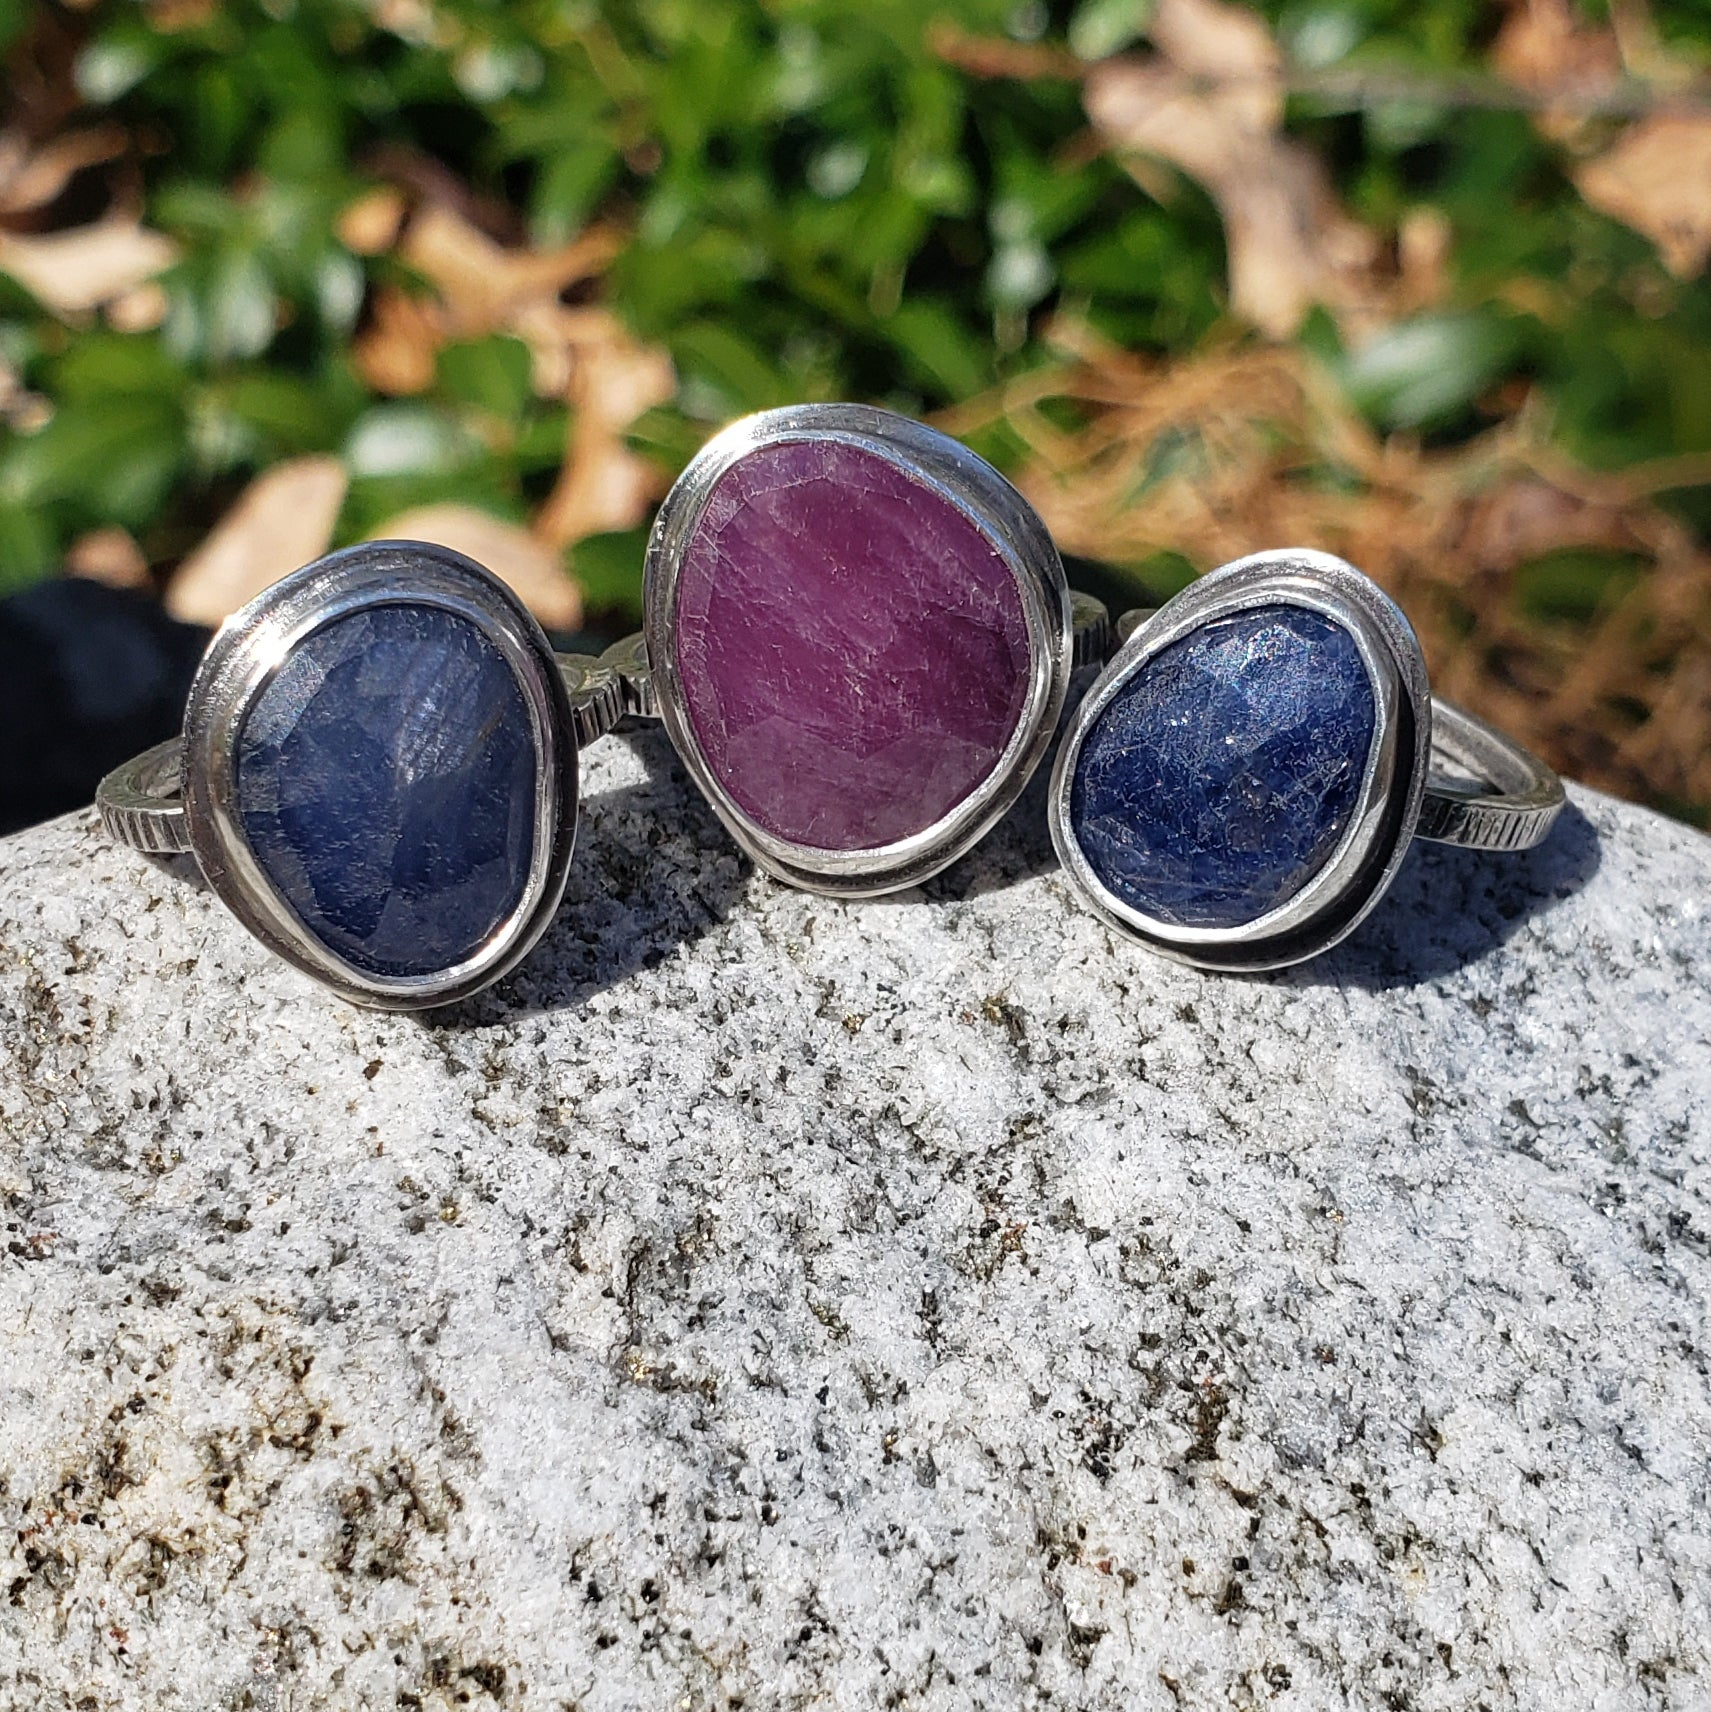 Sapphire Rings in Sterling Silver - 3 Sizes